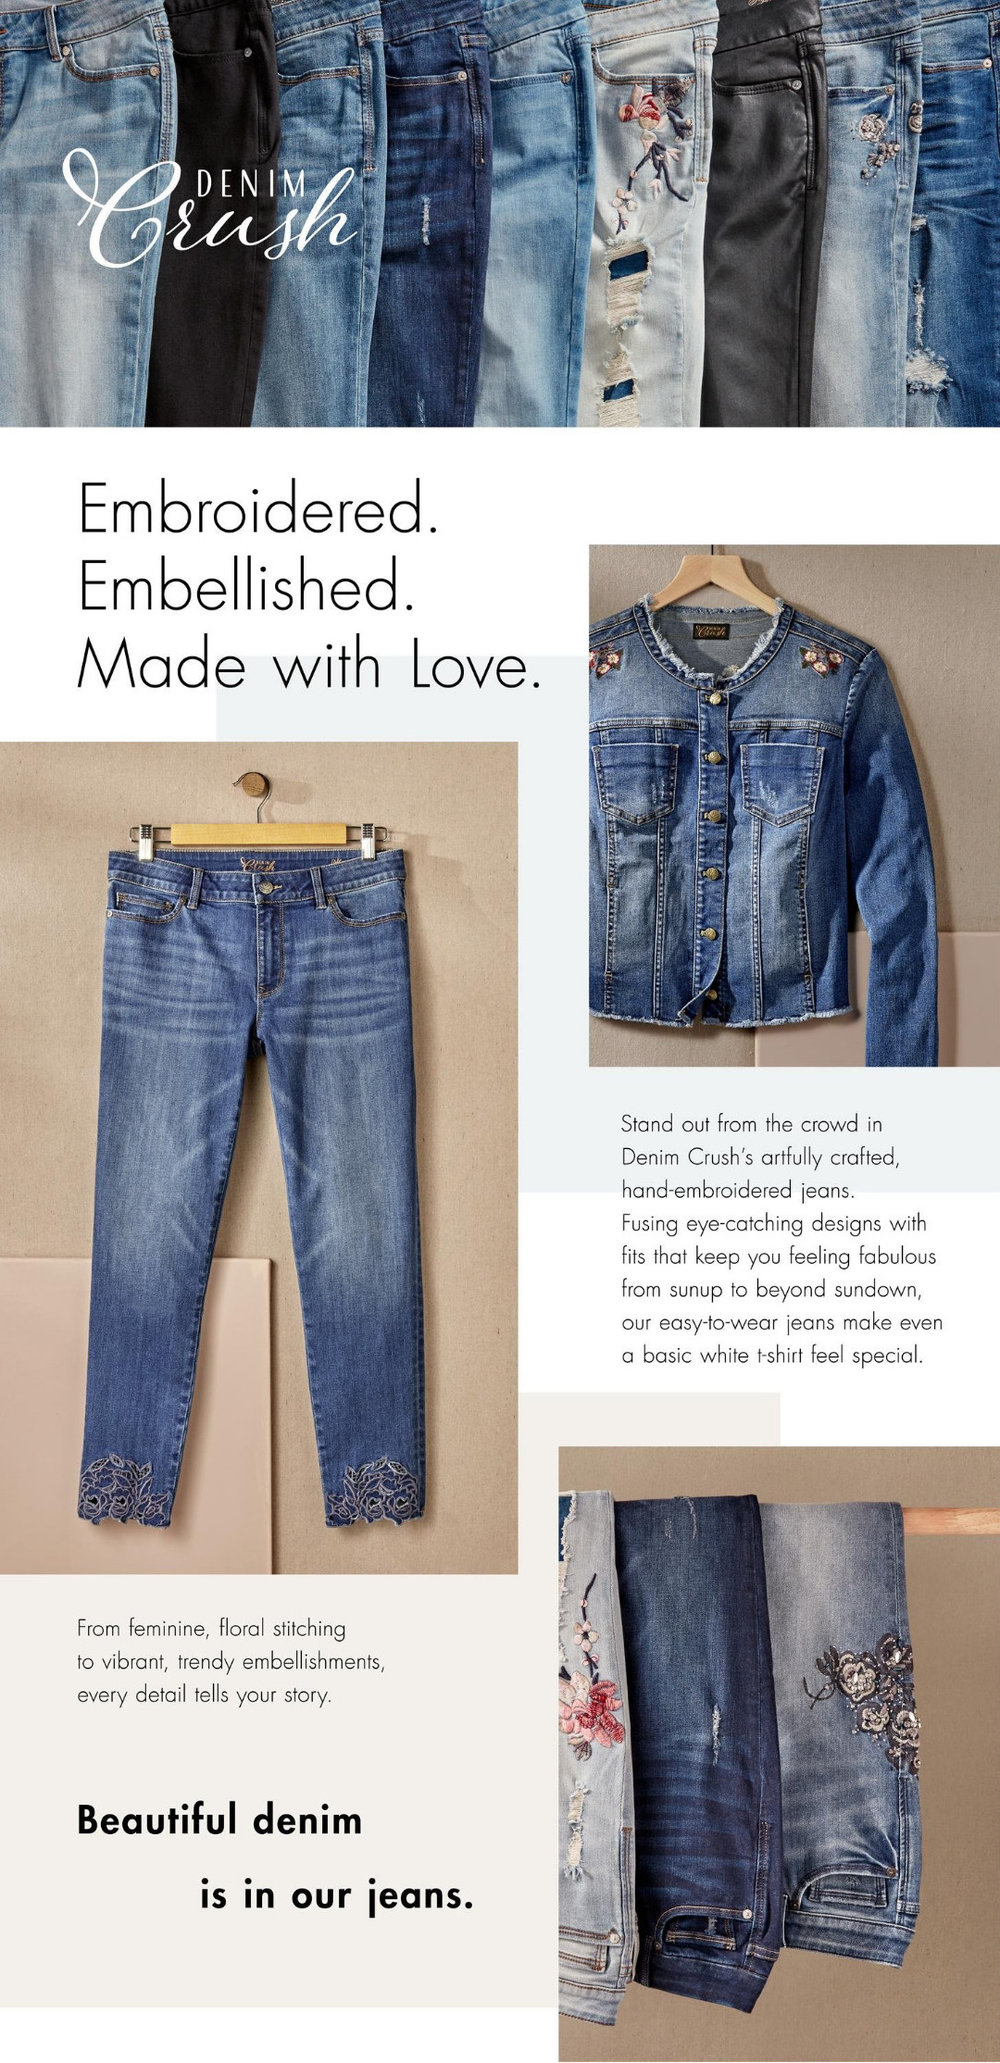 FireShot Capture 13 - Denim Crush Wo__ - https___www.amazon.com_Denim-Crush.jpg